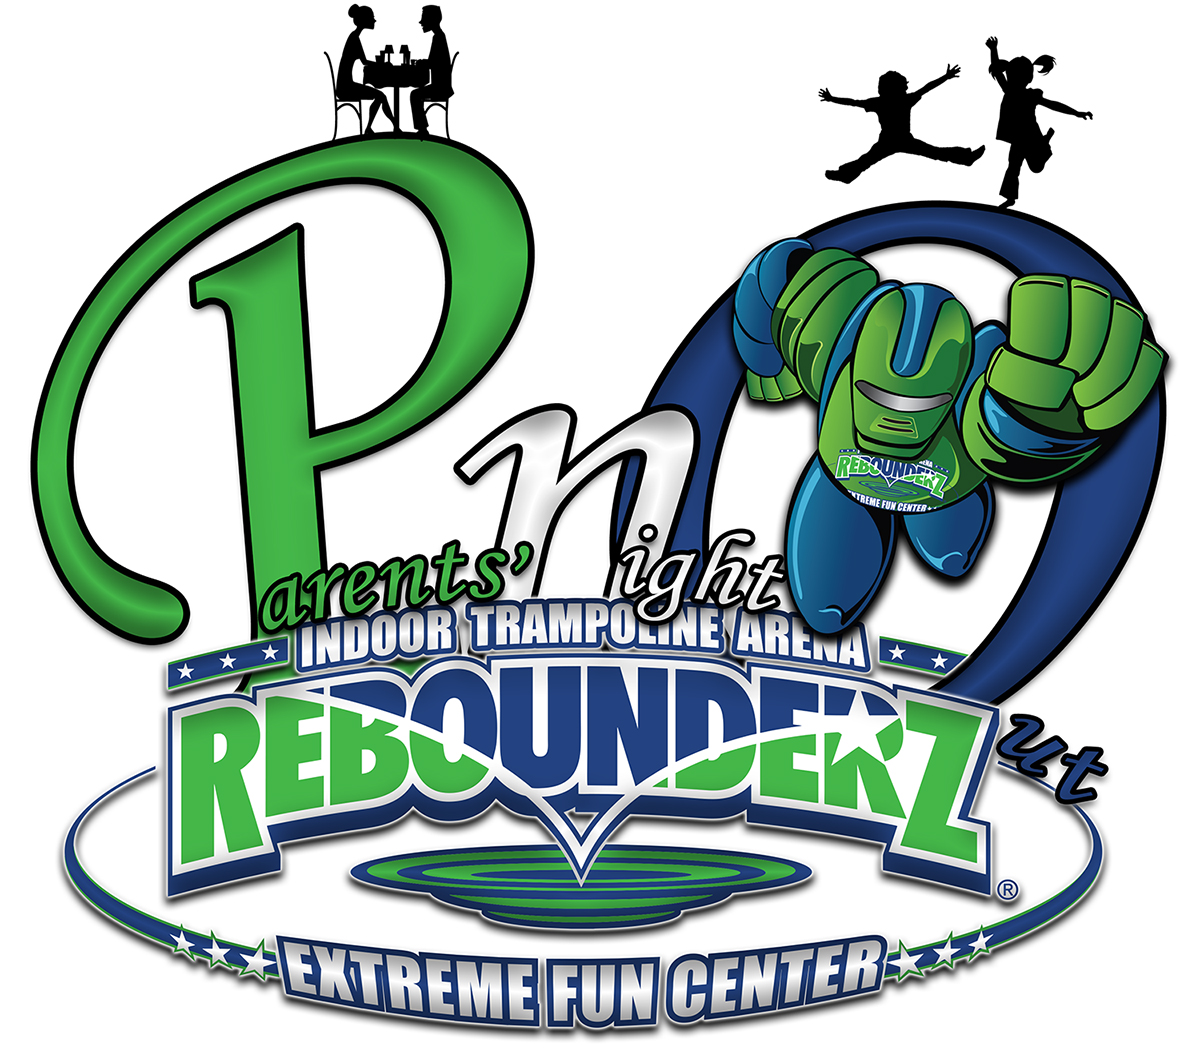 Rebounderz Date Night Ideas Rohnert Park Indoor